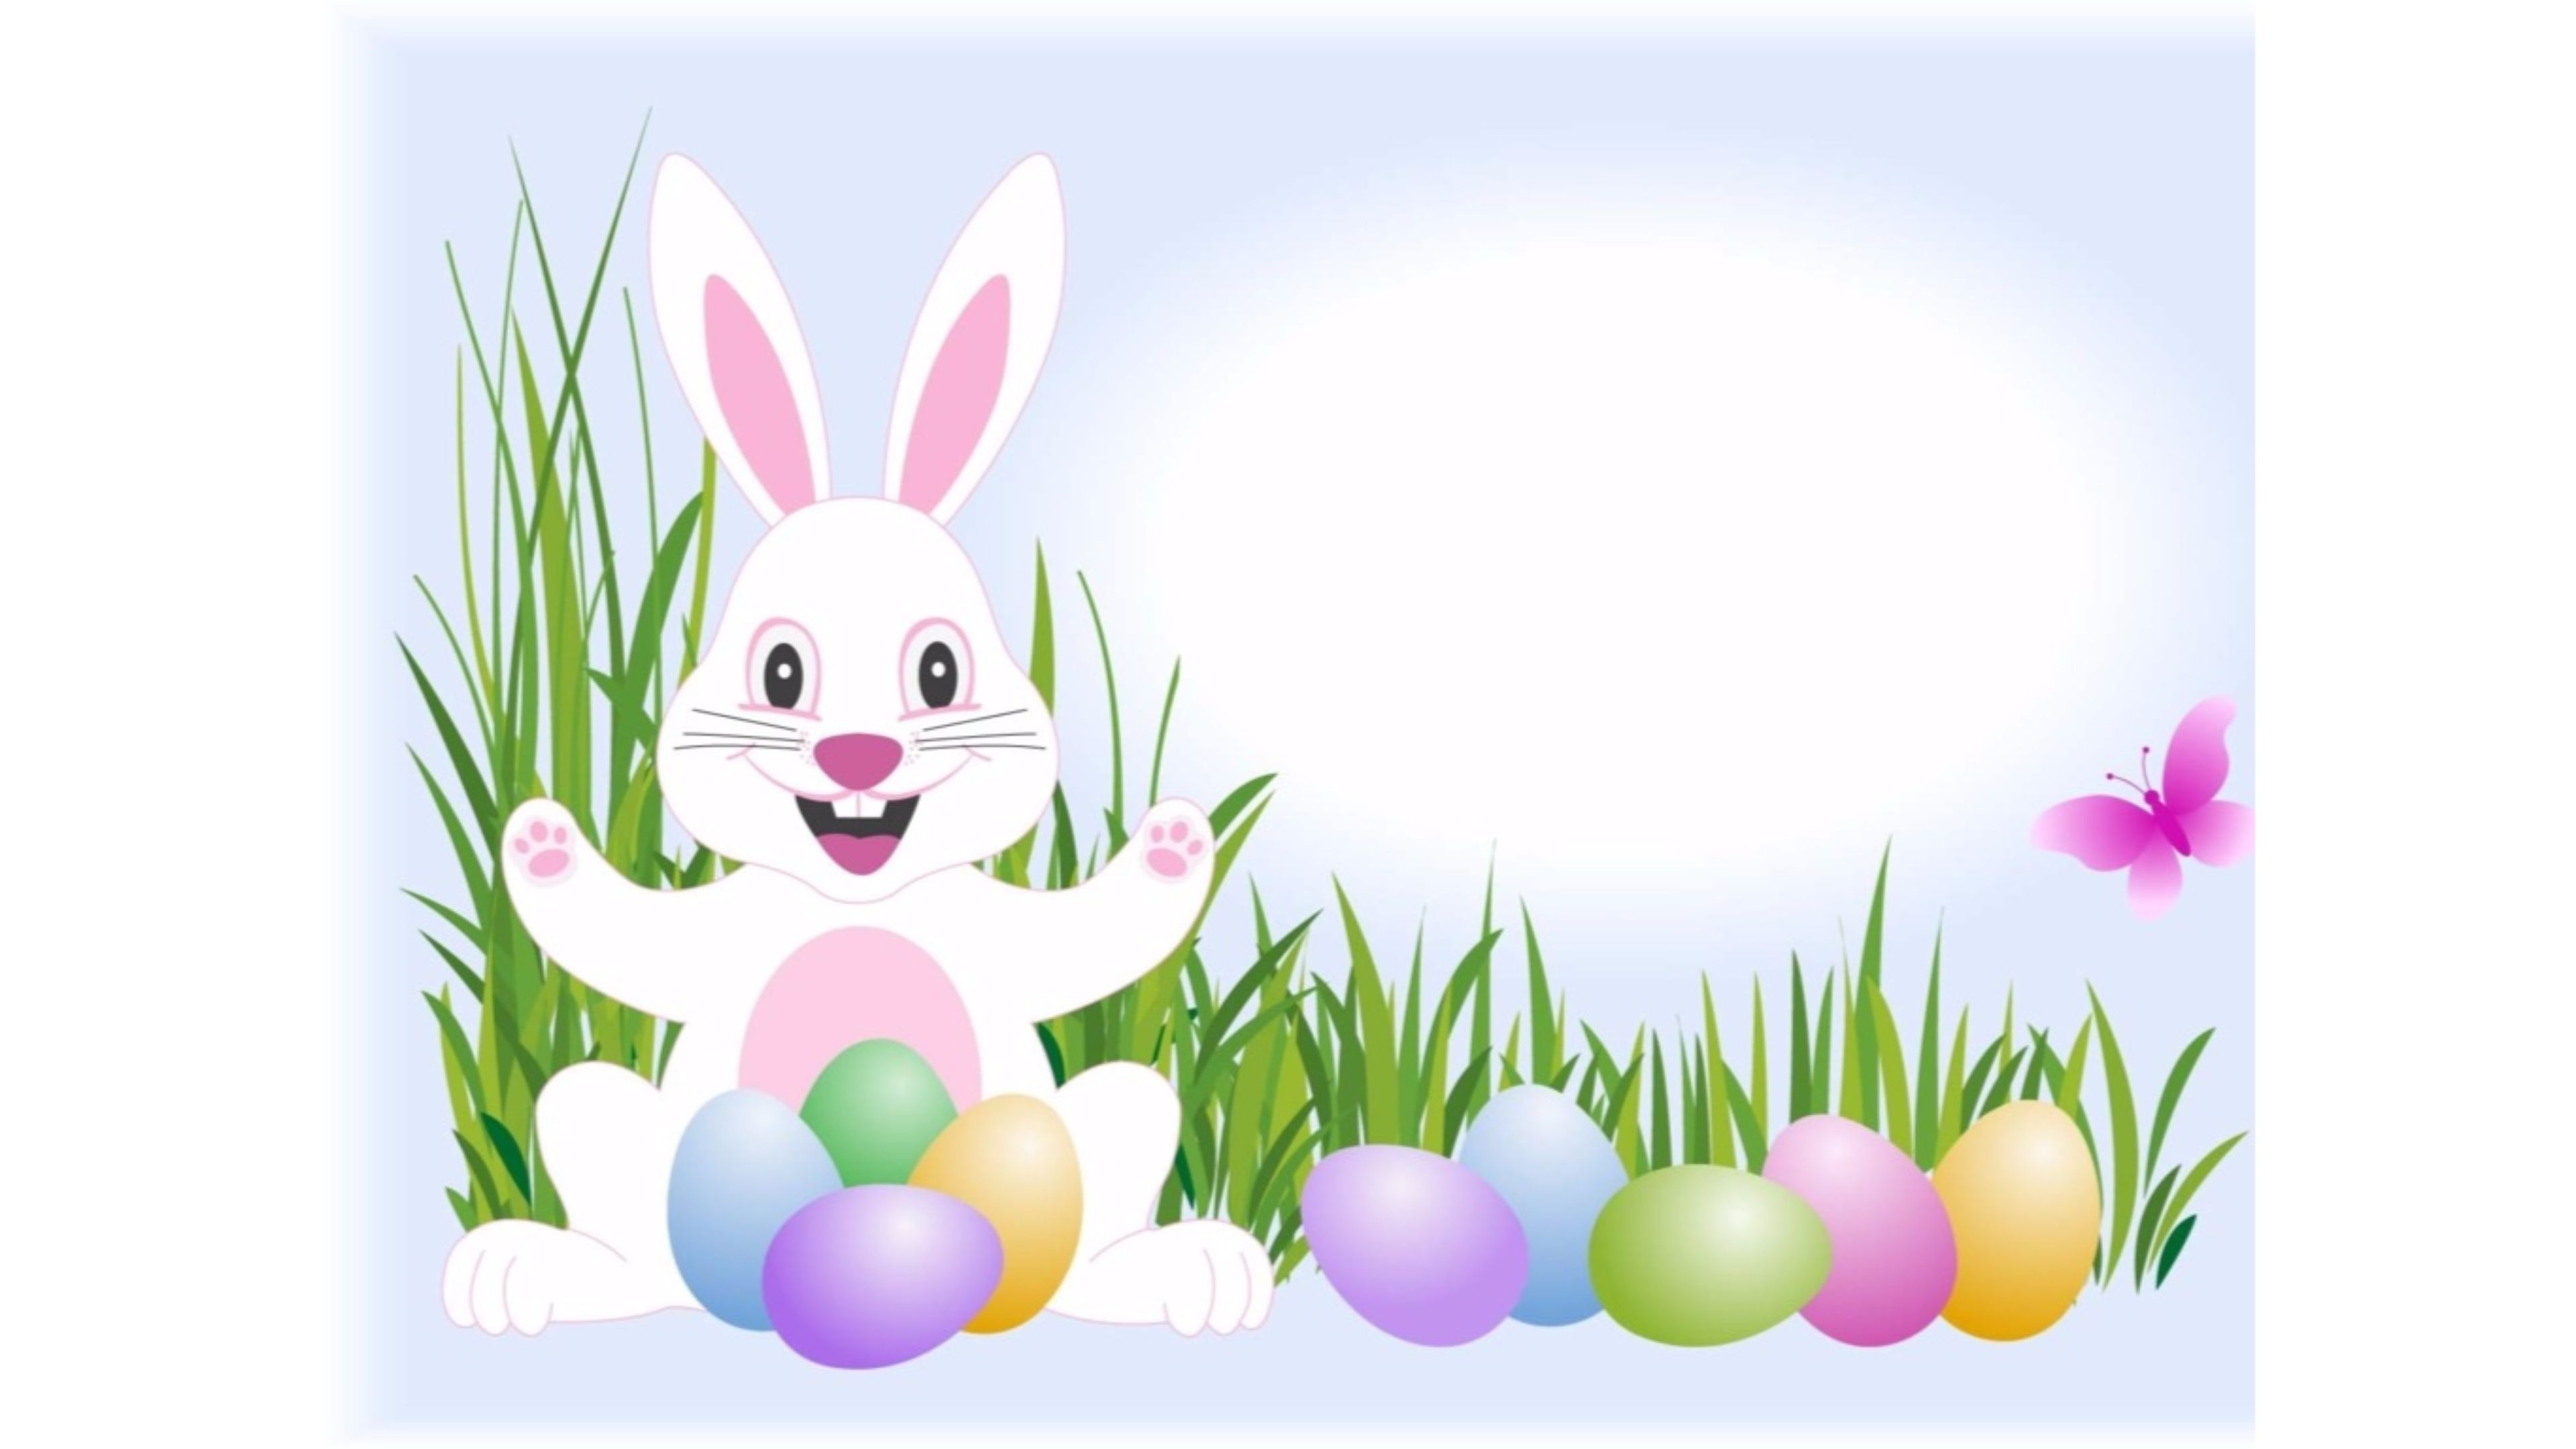 Easter 4k Wallpapers For Your Desktop Or Mobile Screen Free And